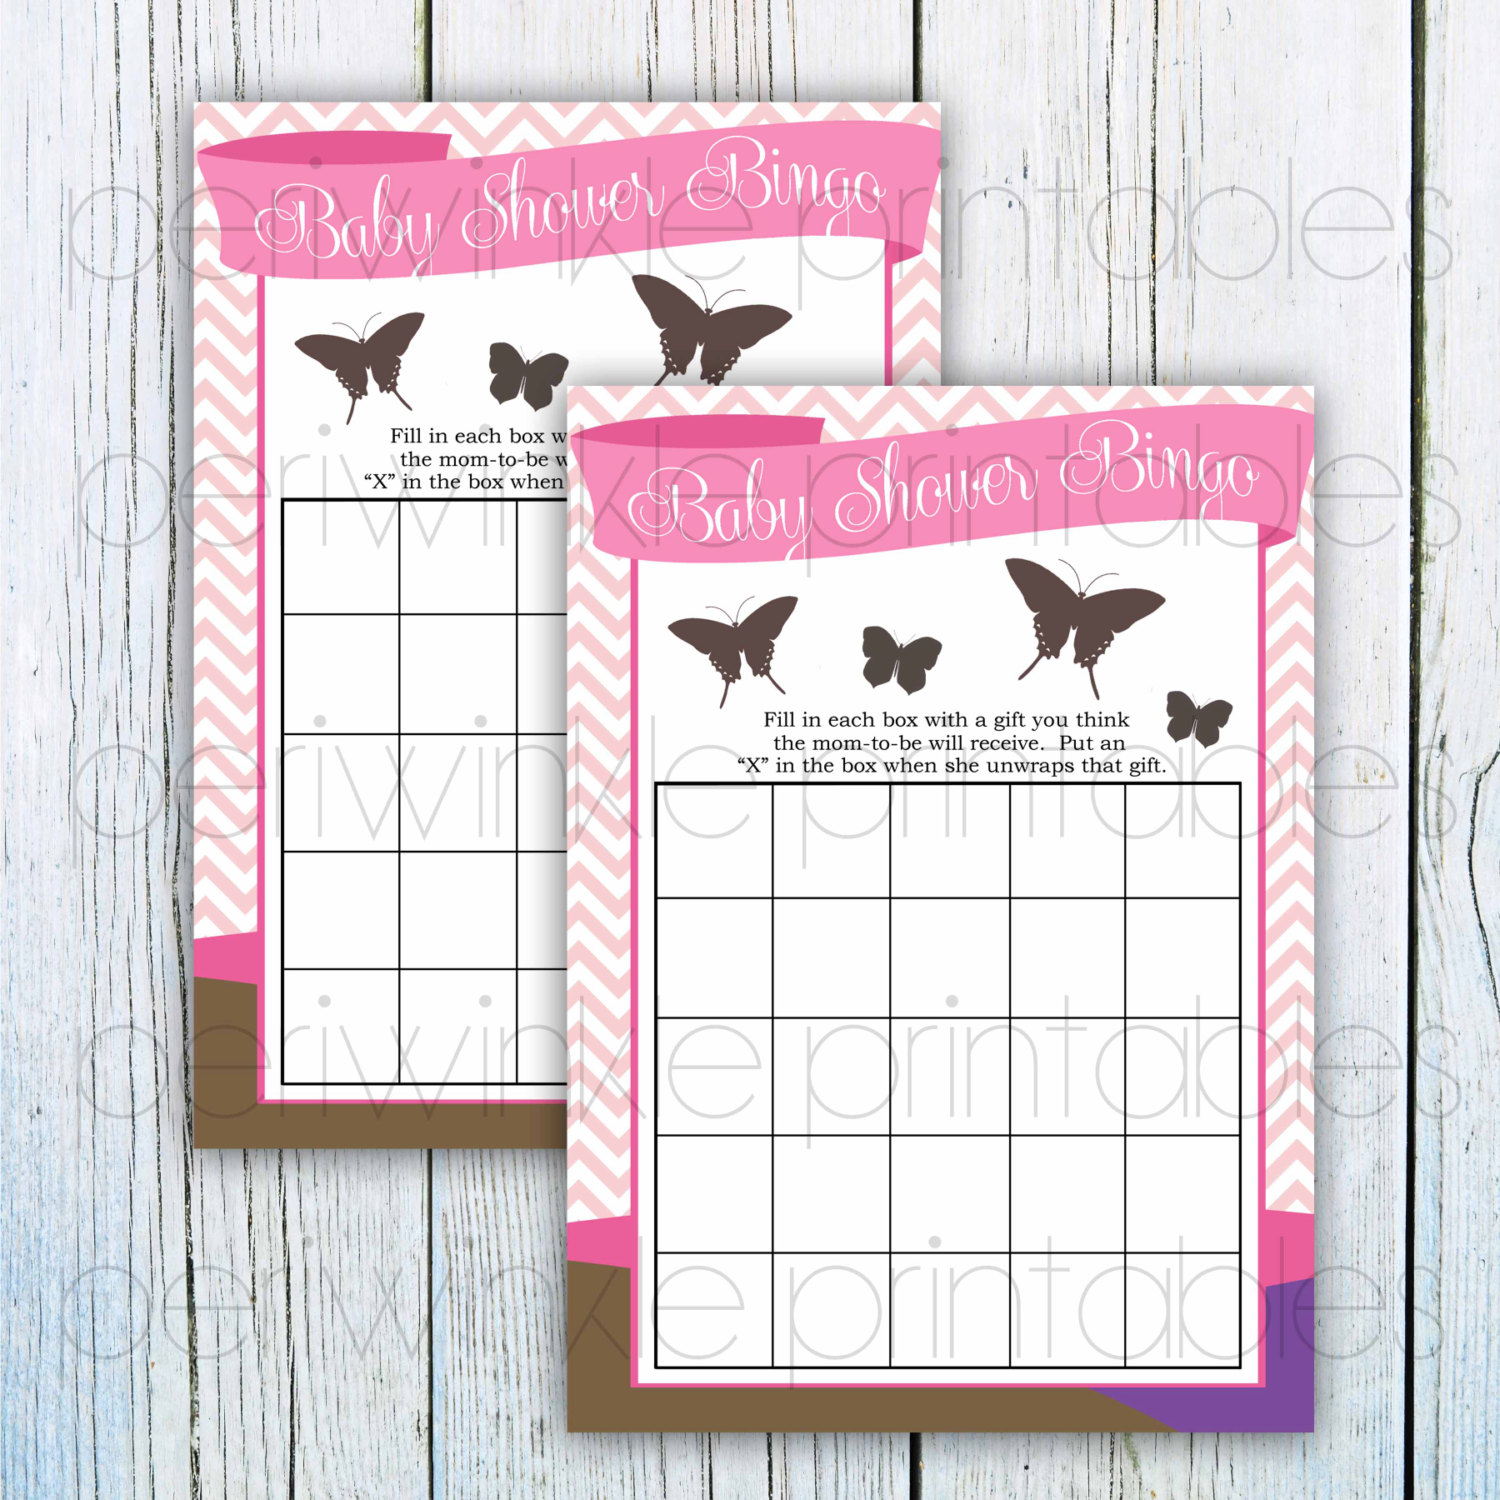 Butterfly Baby Shower Printable Baby Shower Bingo